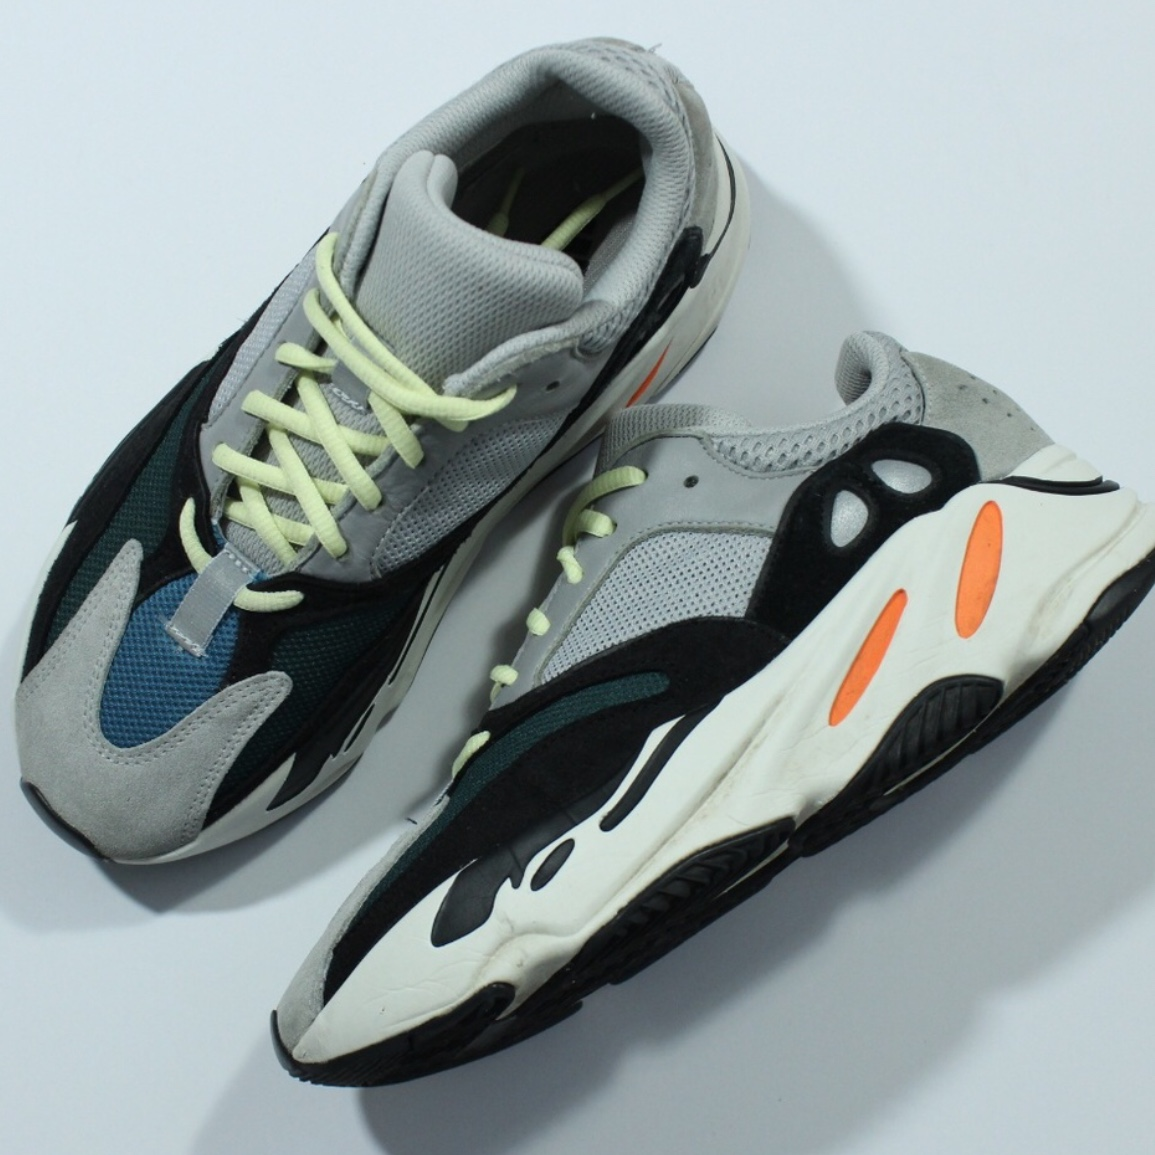 sports shoes 57a3a 6f1de Authentic Adidas Yeezy Boost 700 Wave Runner B75571 ...